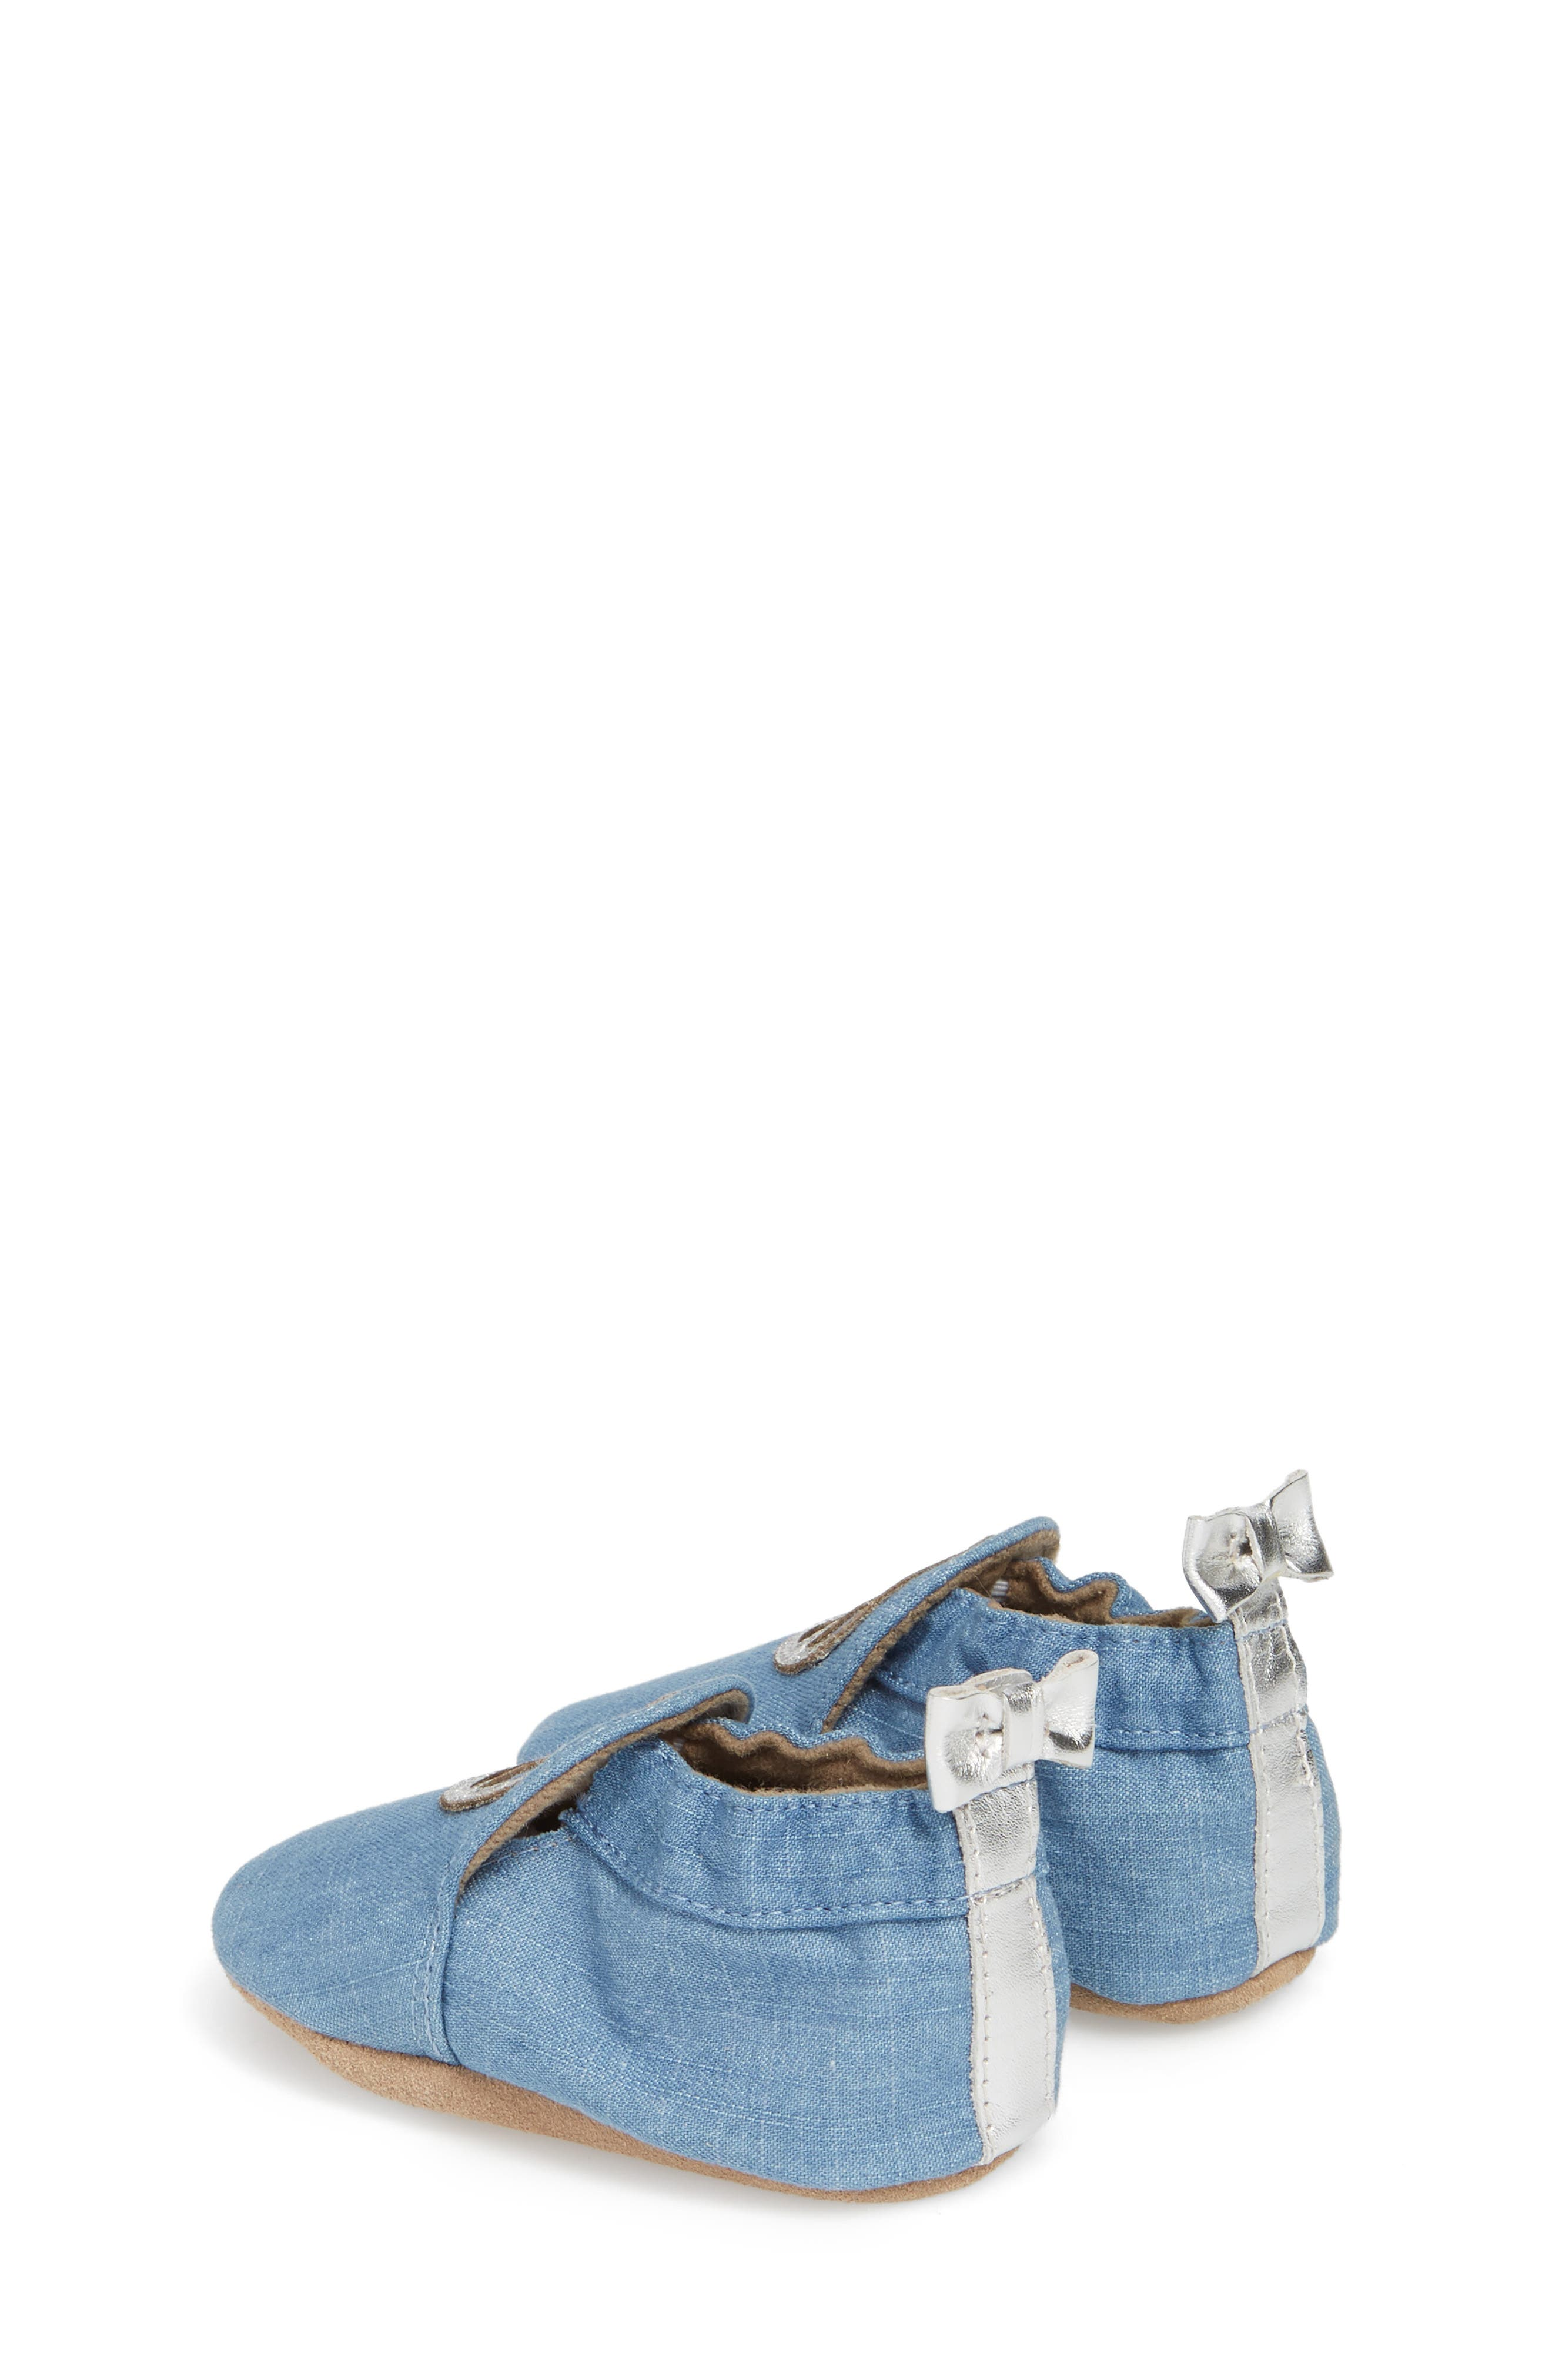 ROBEEZ<SUP>®</SUP>, Peace Out Moccasin Crib Shoe, Alternate thumbnail 2, color, BLUE